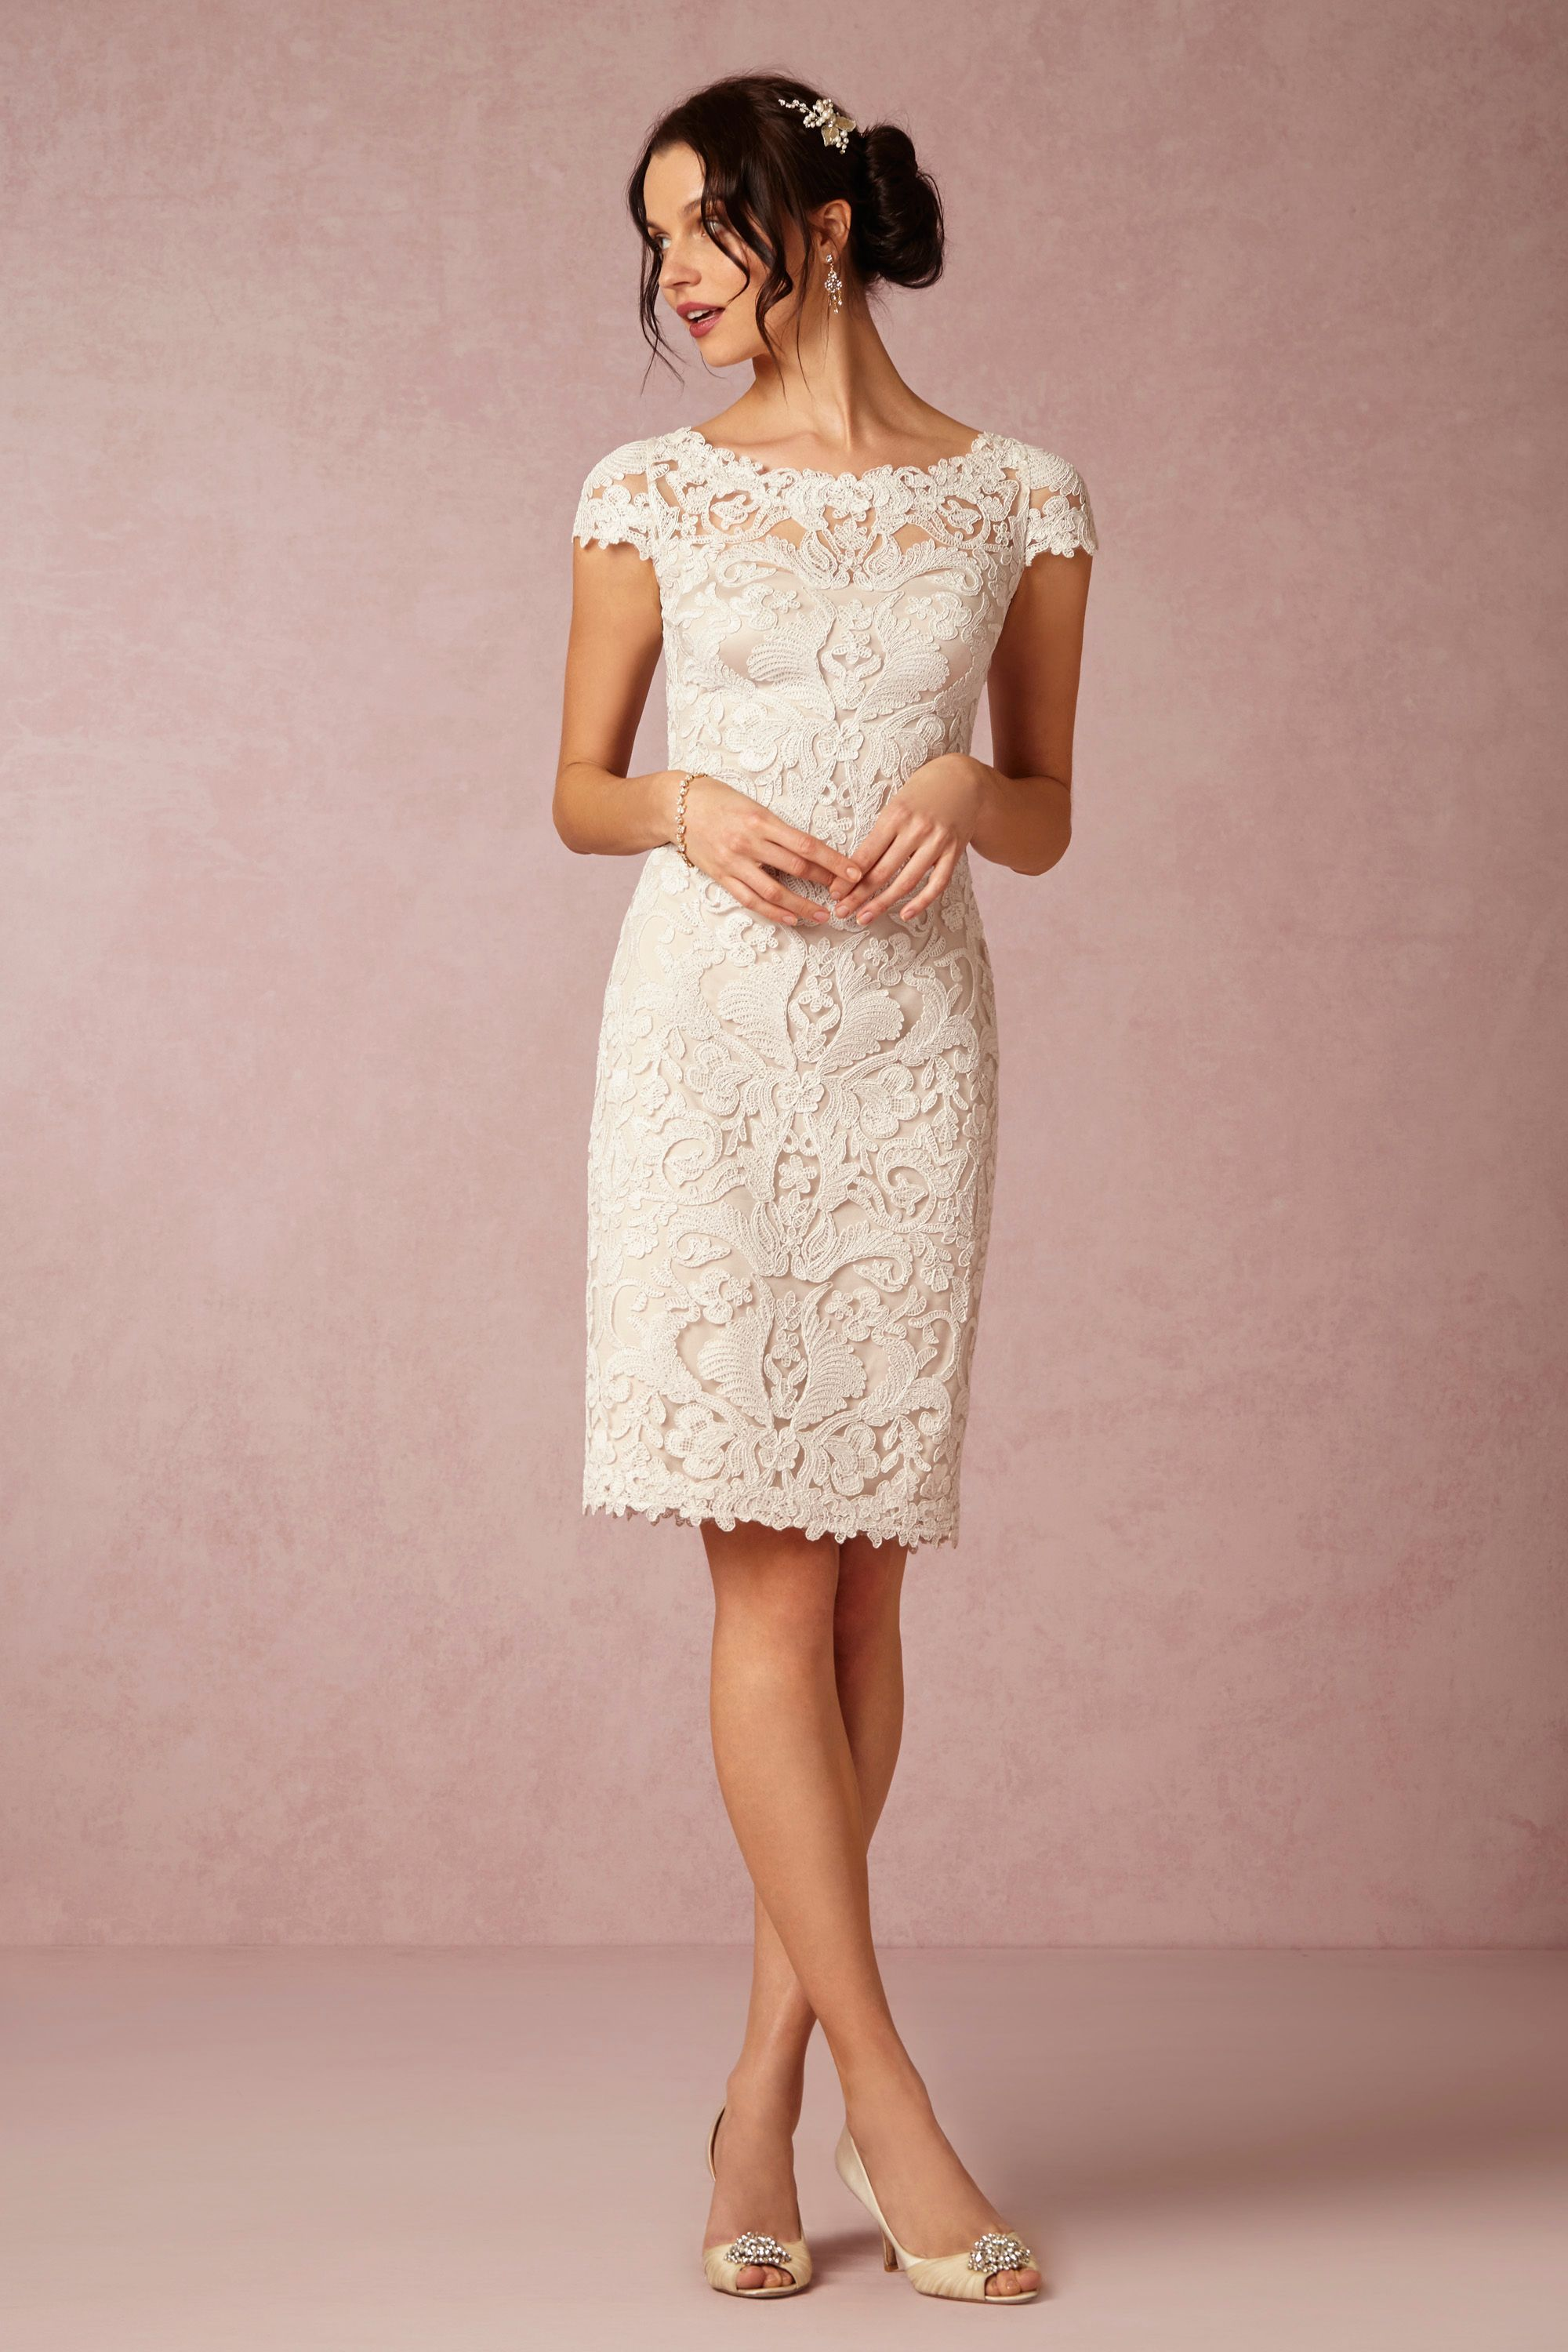 Hadley Dress from @BHLDN | Wedding | Pinterest | Vestidos novia ...